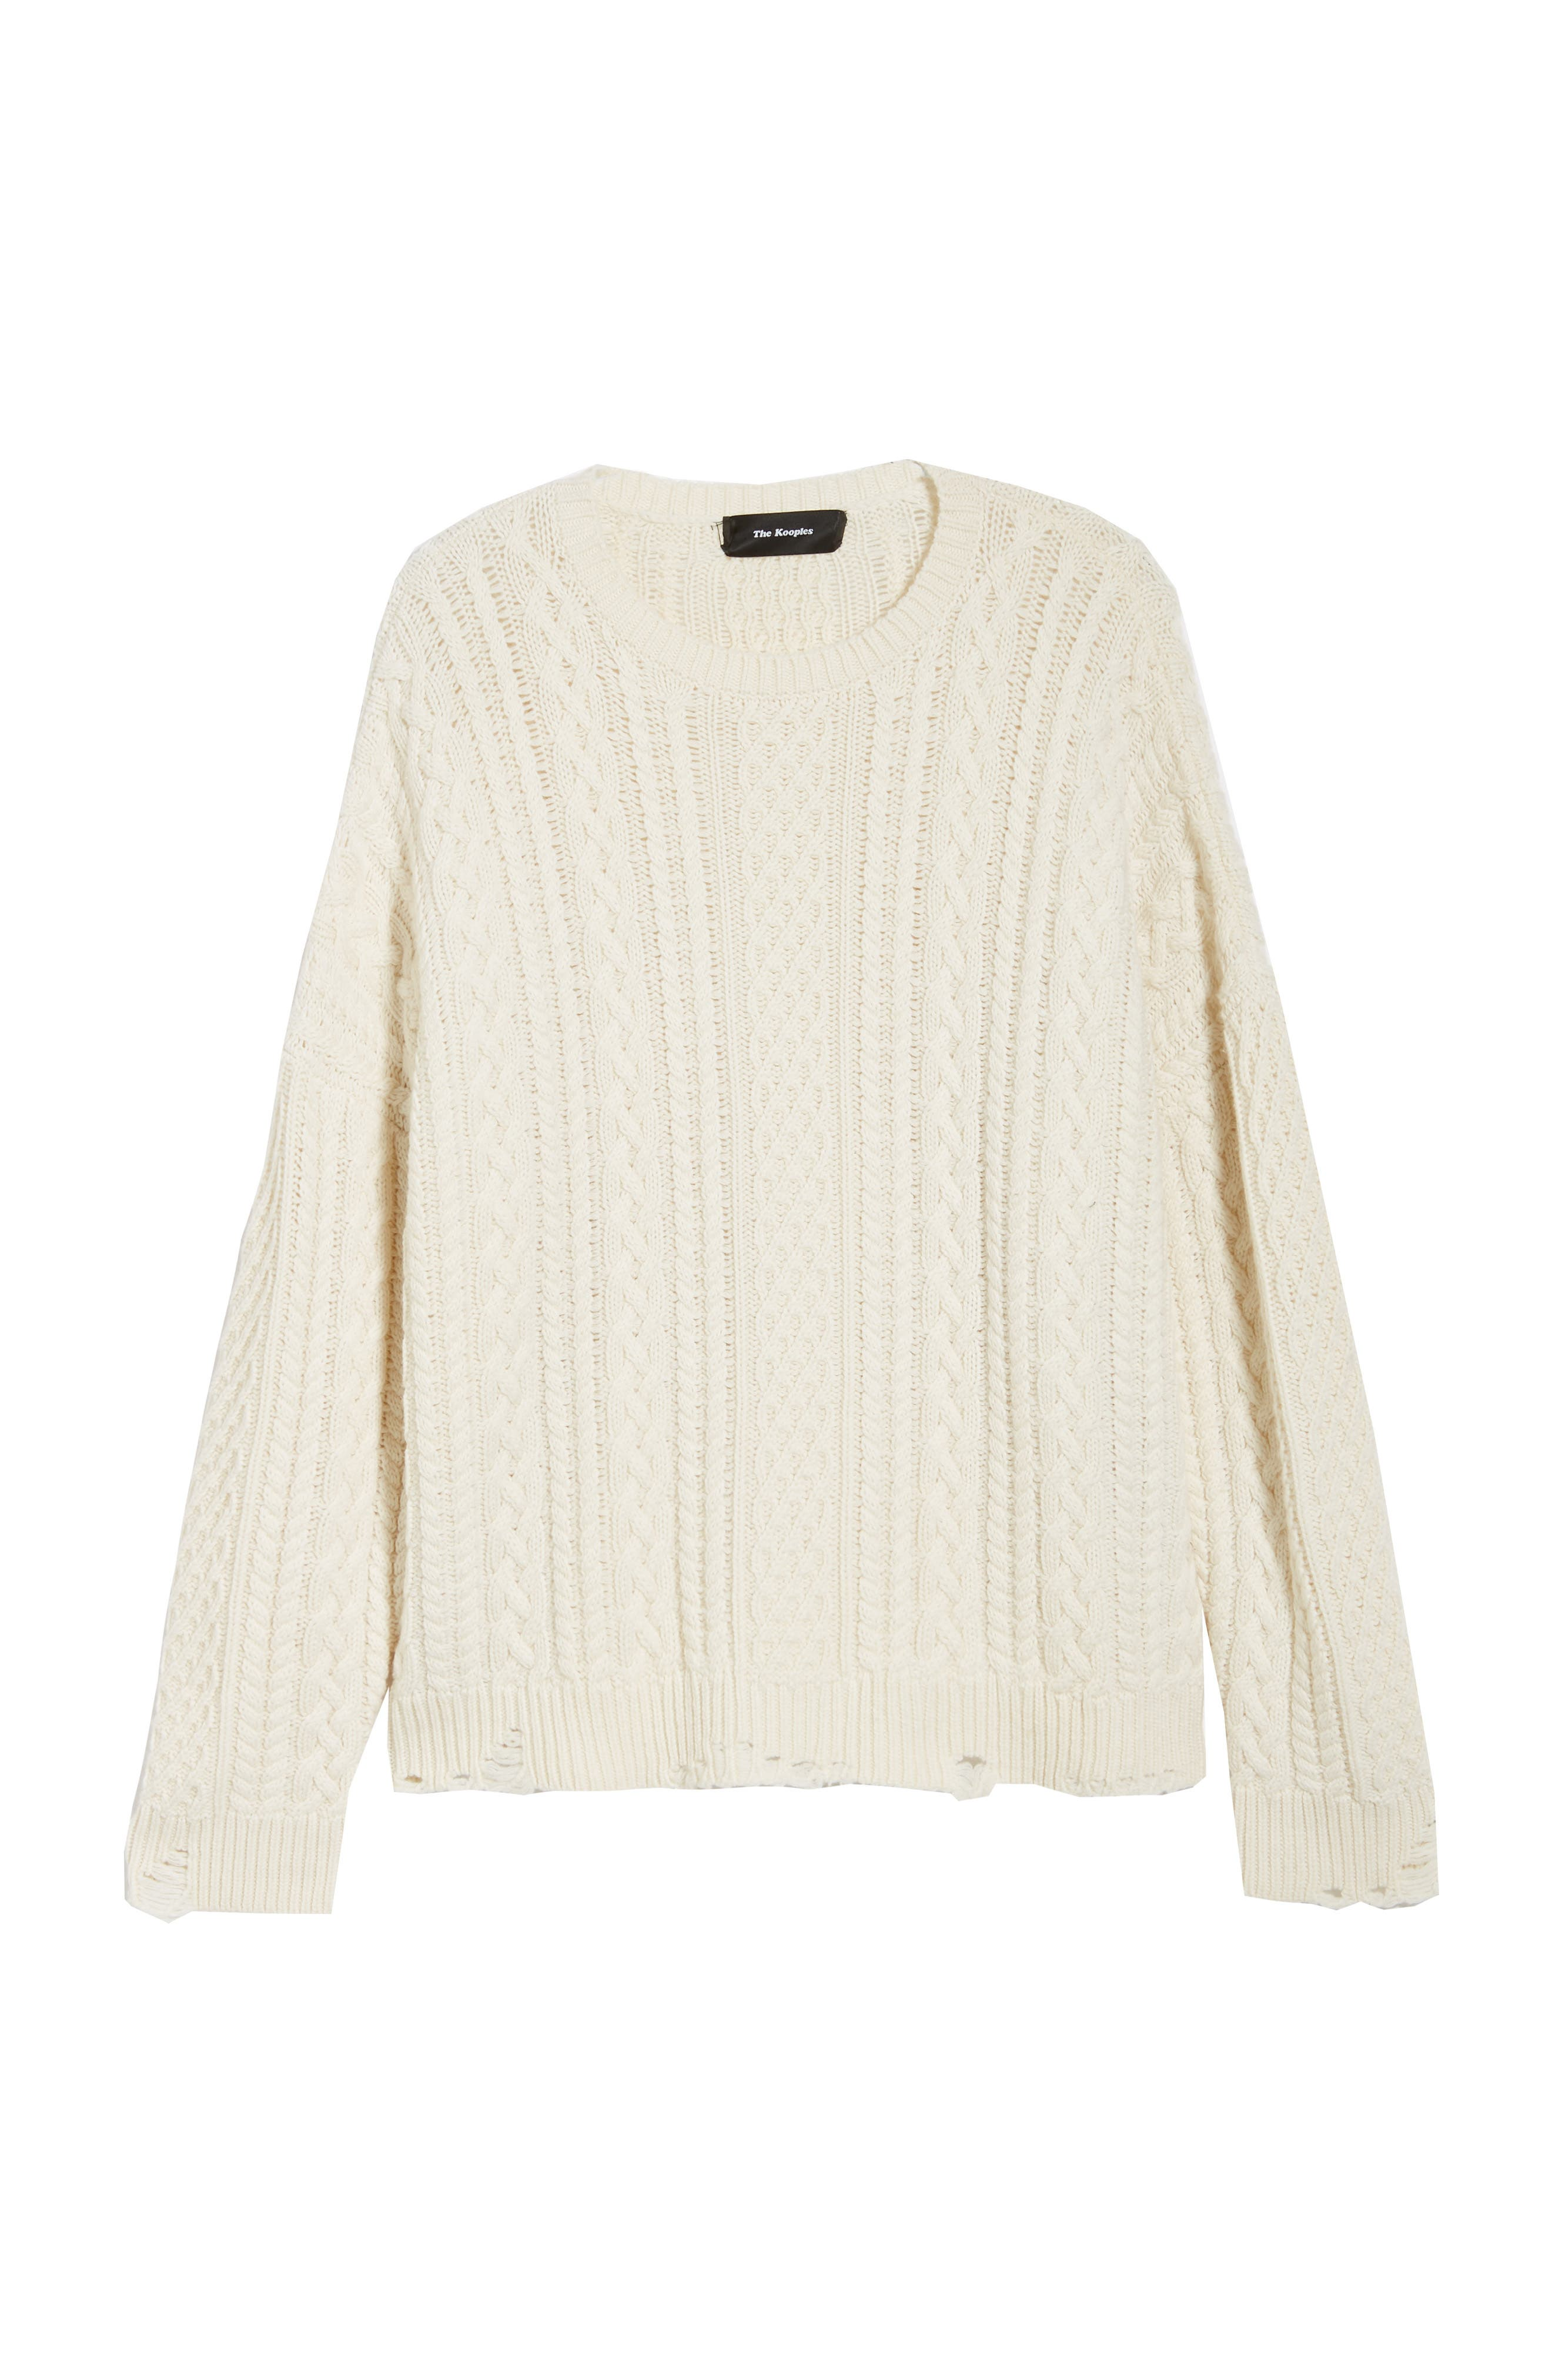 Oversize Distressed Wool Blend Sweater,                             Alternate thumbnail 6, color,                             BEIGE/ WHITE